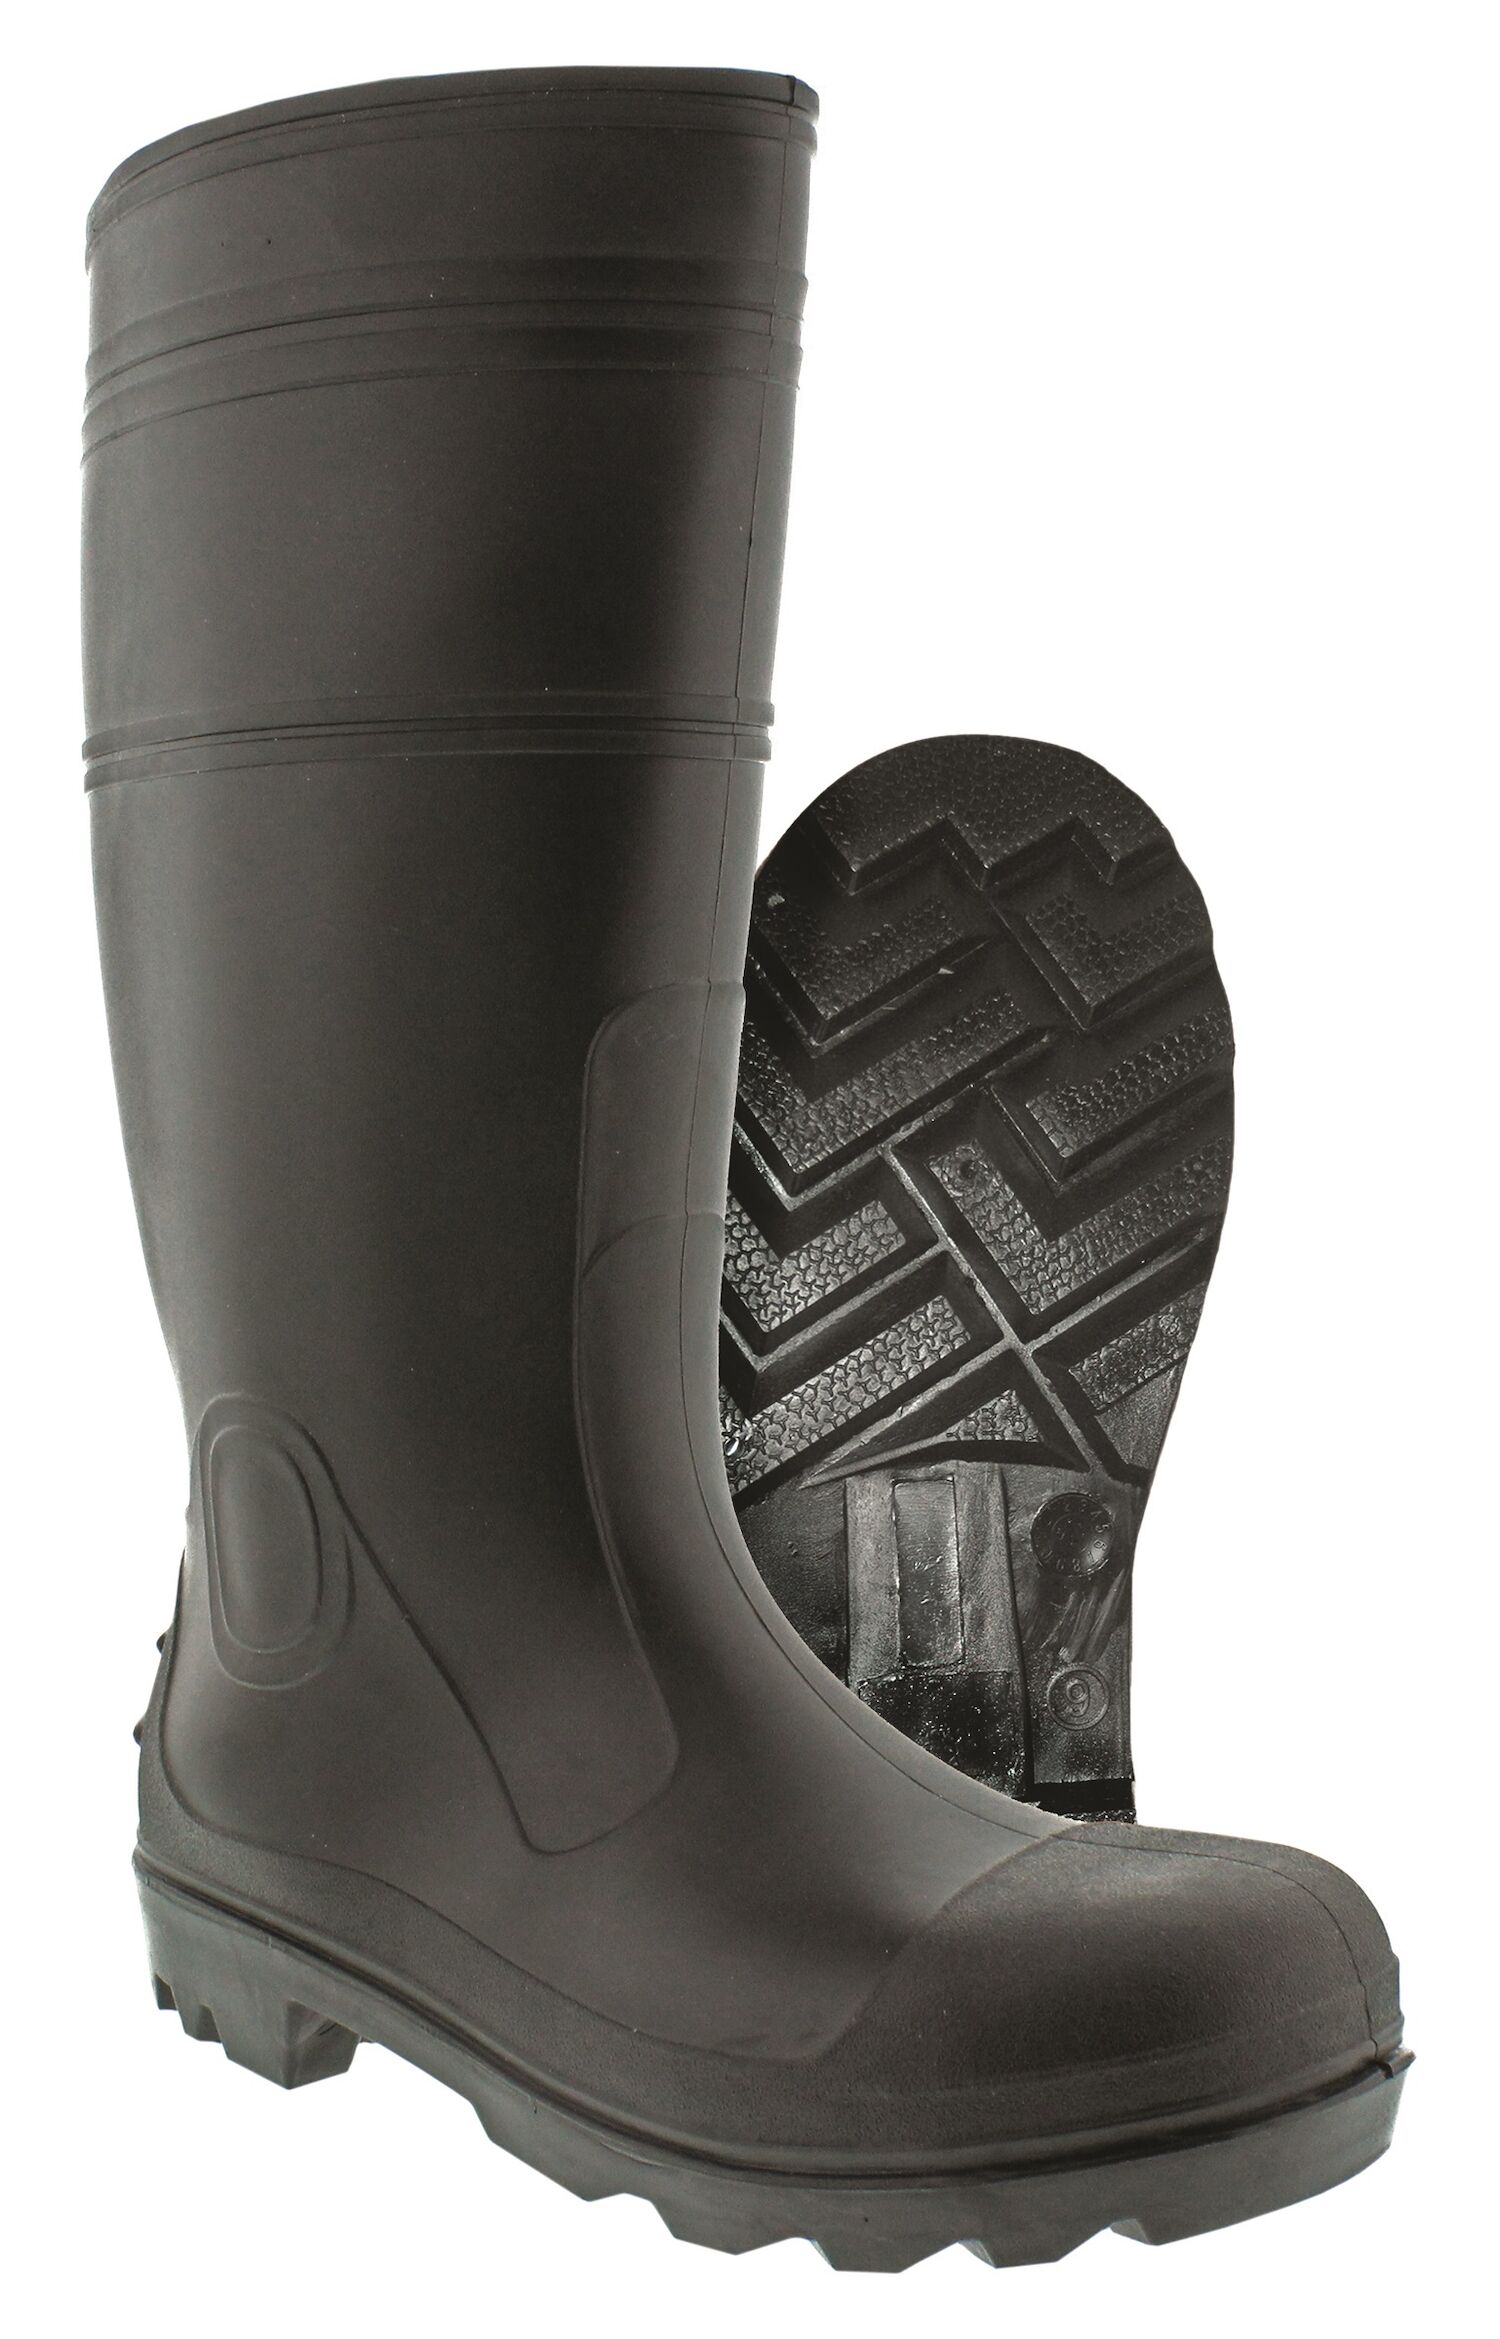 025593082455_Itasca_Blk PVC Boot- Plain - Size 10_Styled.jpg